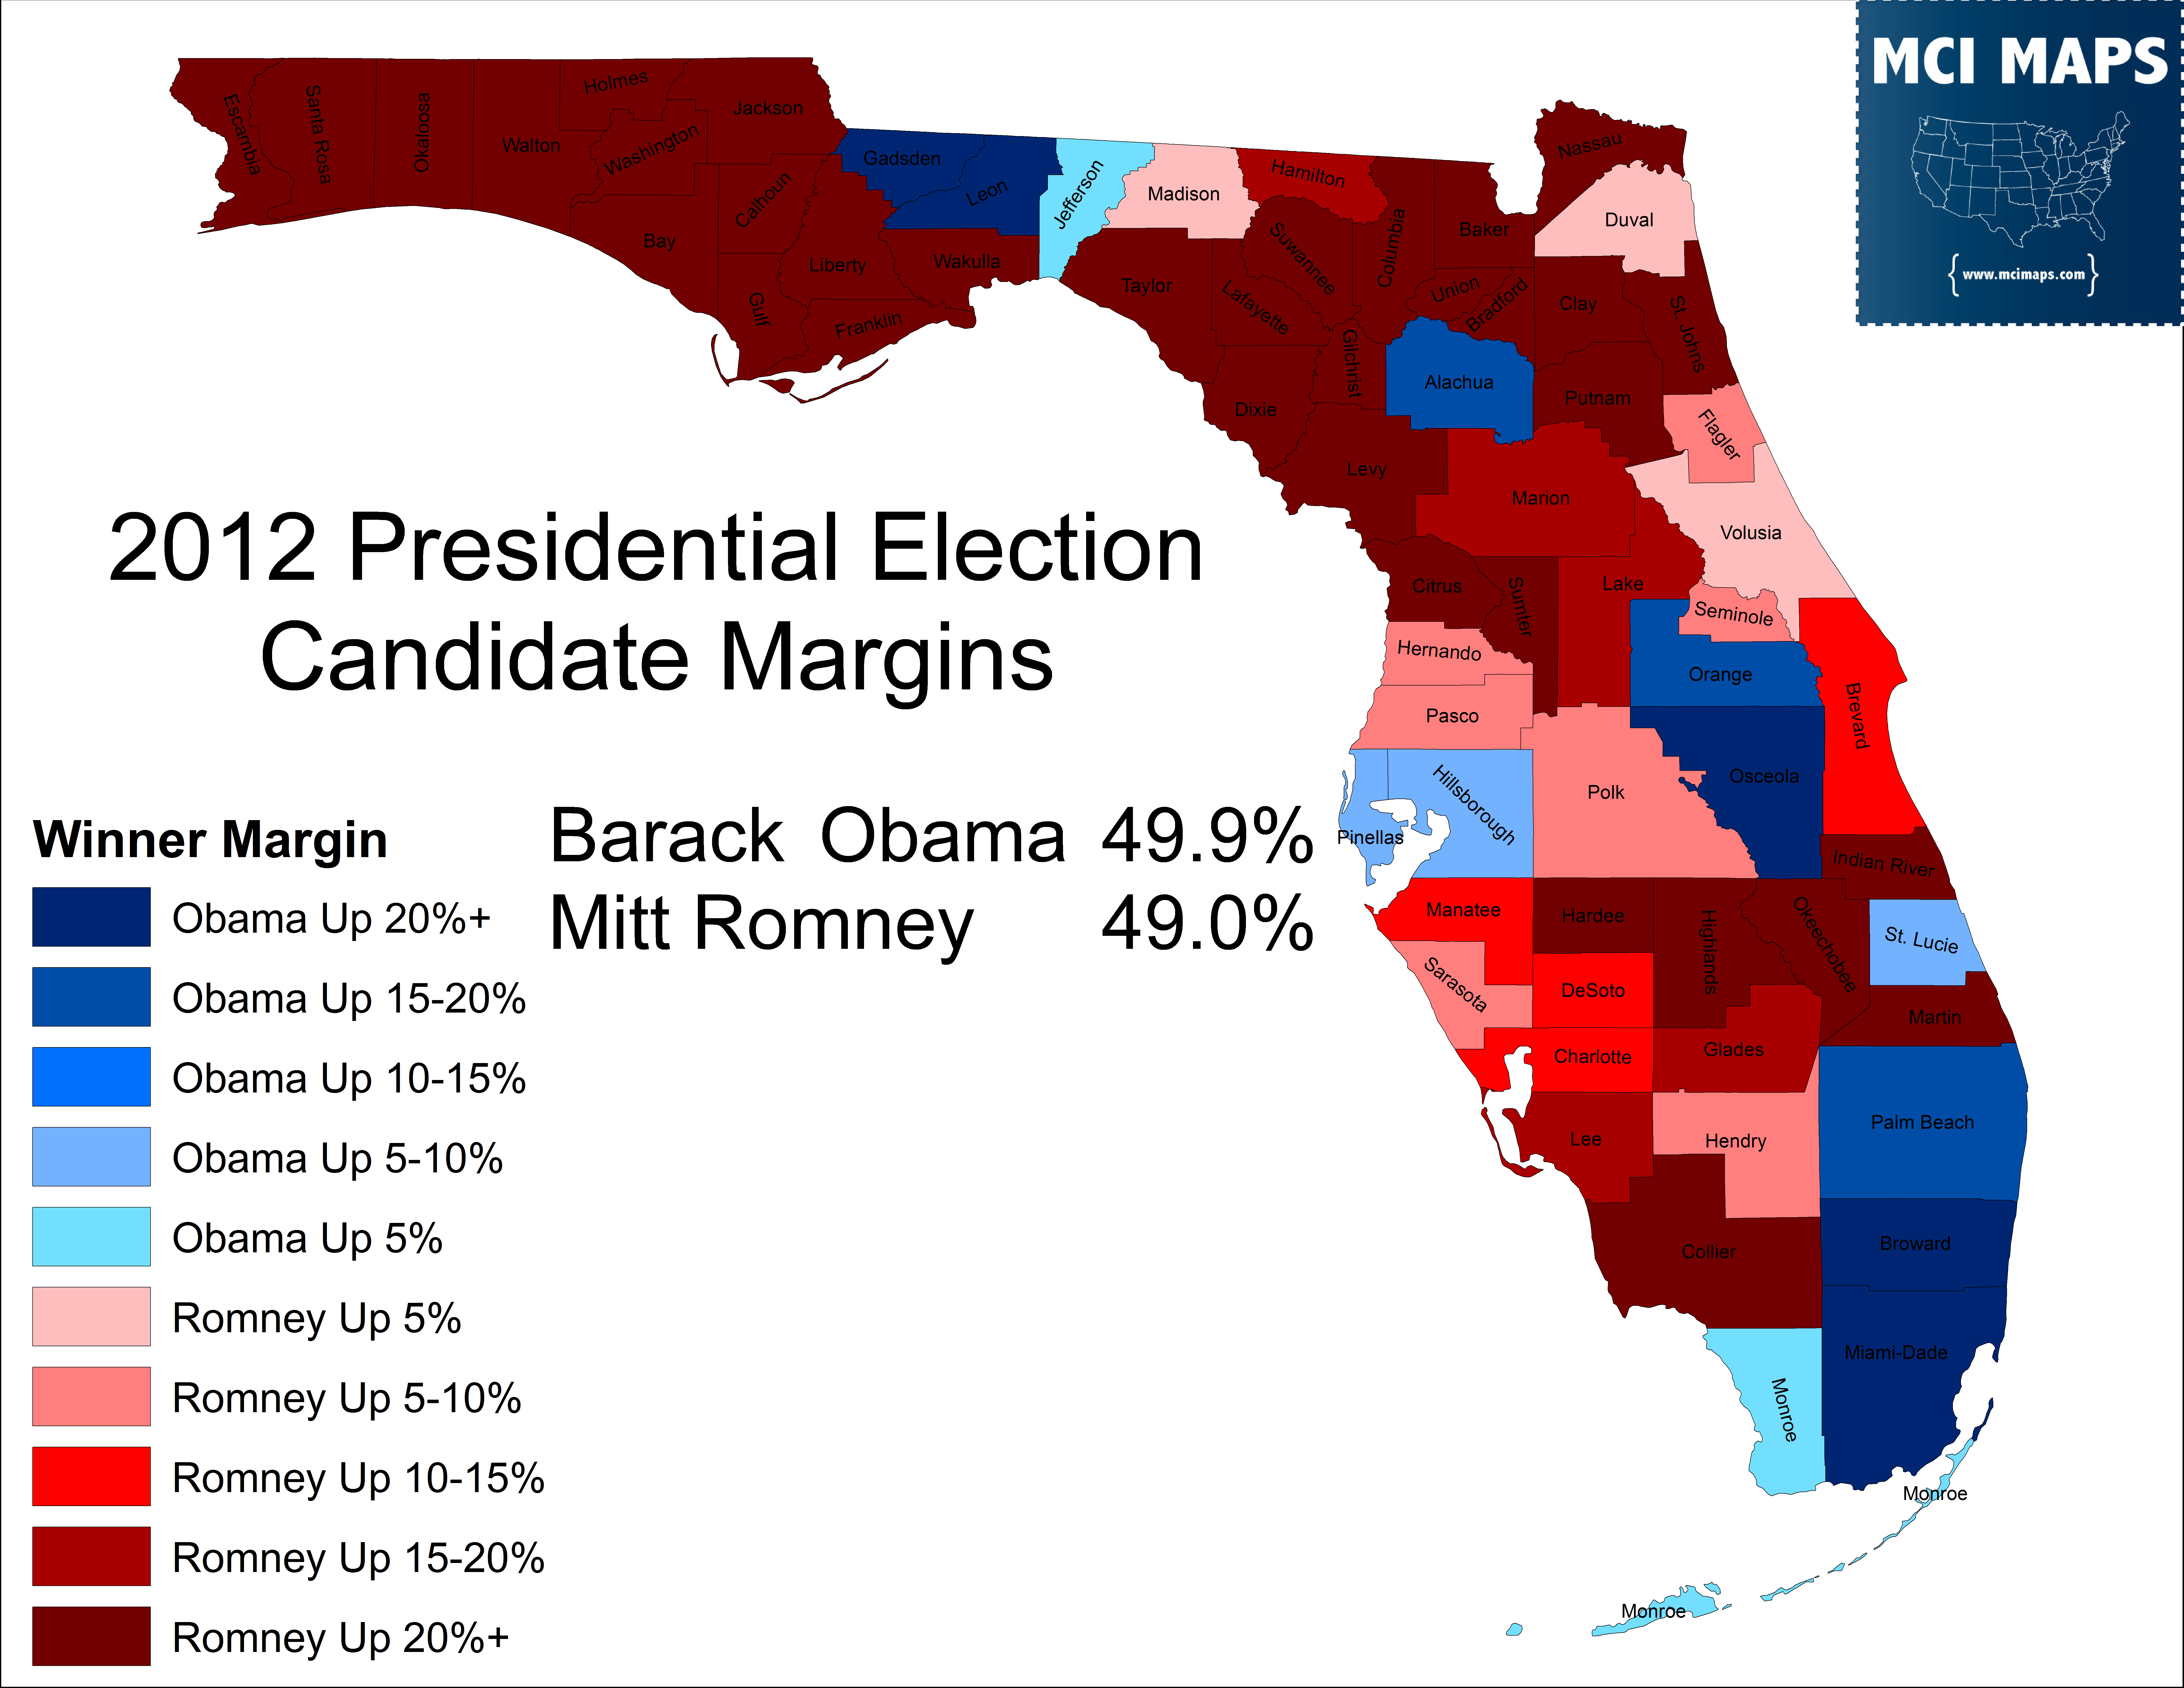 United States Presidential Election Wikipedia US - 2012 election results us map